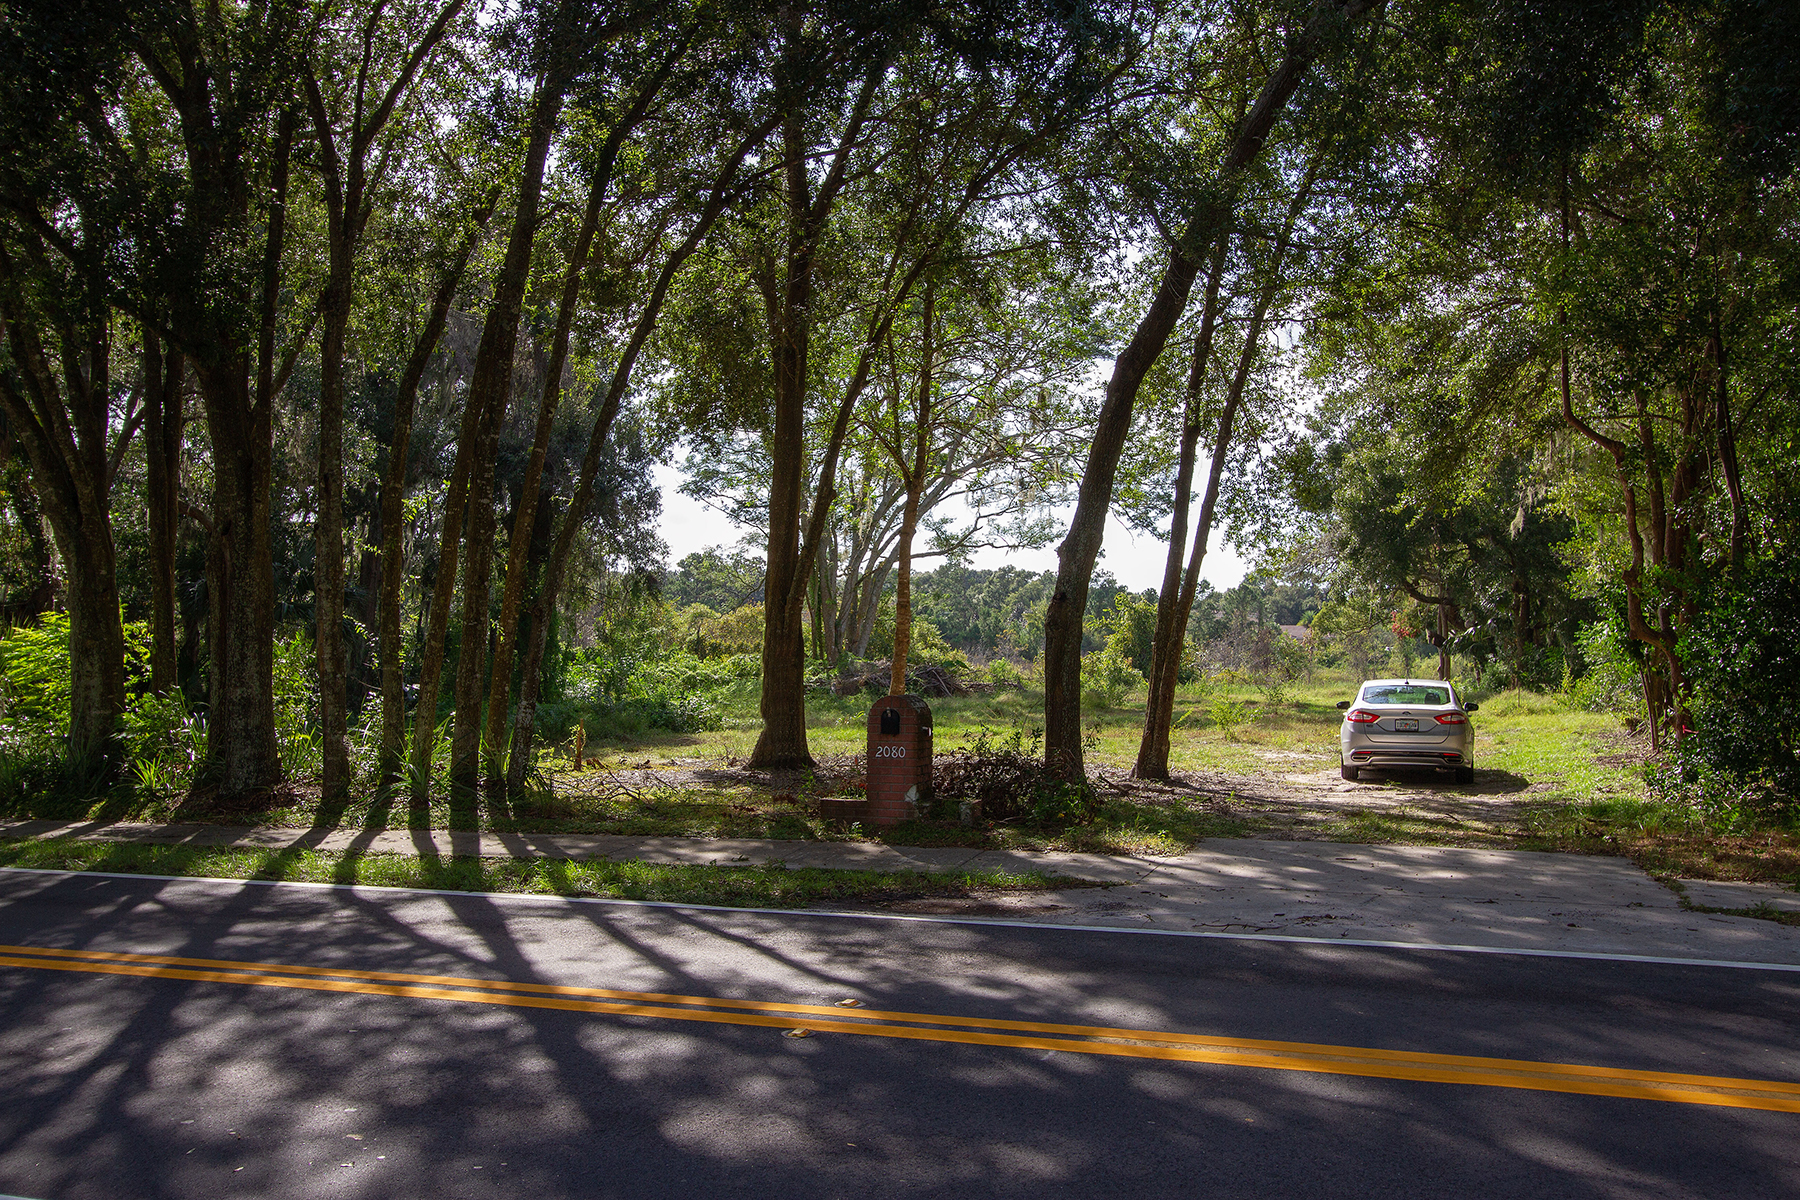 Land for Sale at SANFORD-ORLANDO 2080 Lake Markham Rd Rd Sanford, Florida 32771 United States